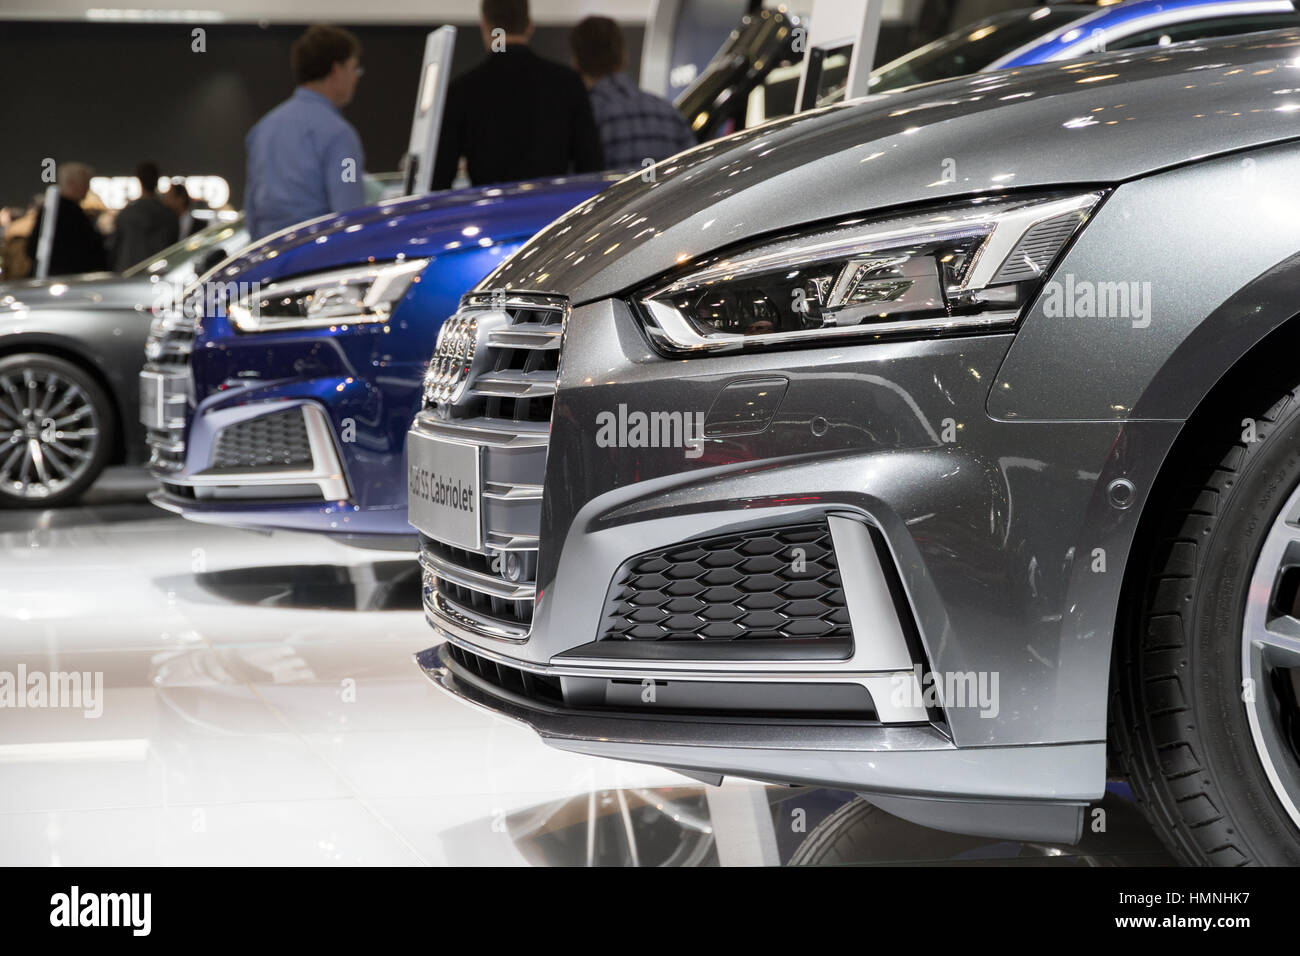 BRUSSELS - JAN 19, 2017: New Audi cars on display at the Brussels Motor Show. - Stock Image